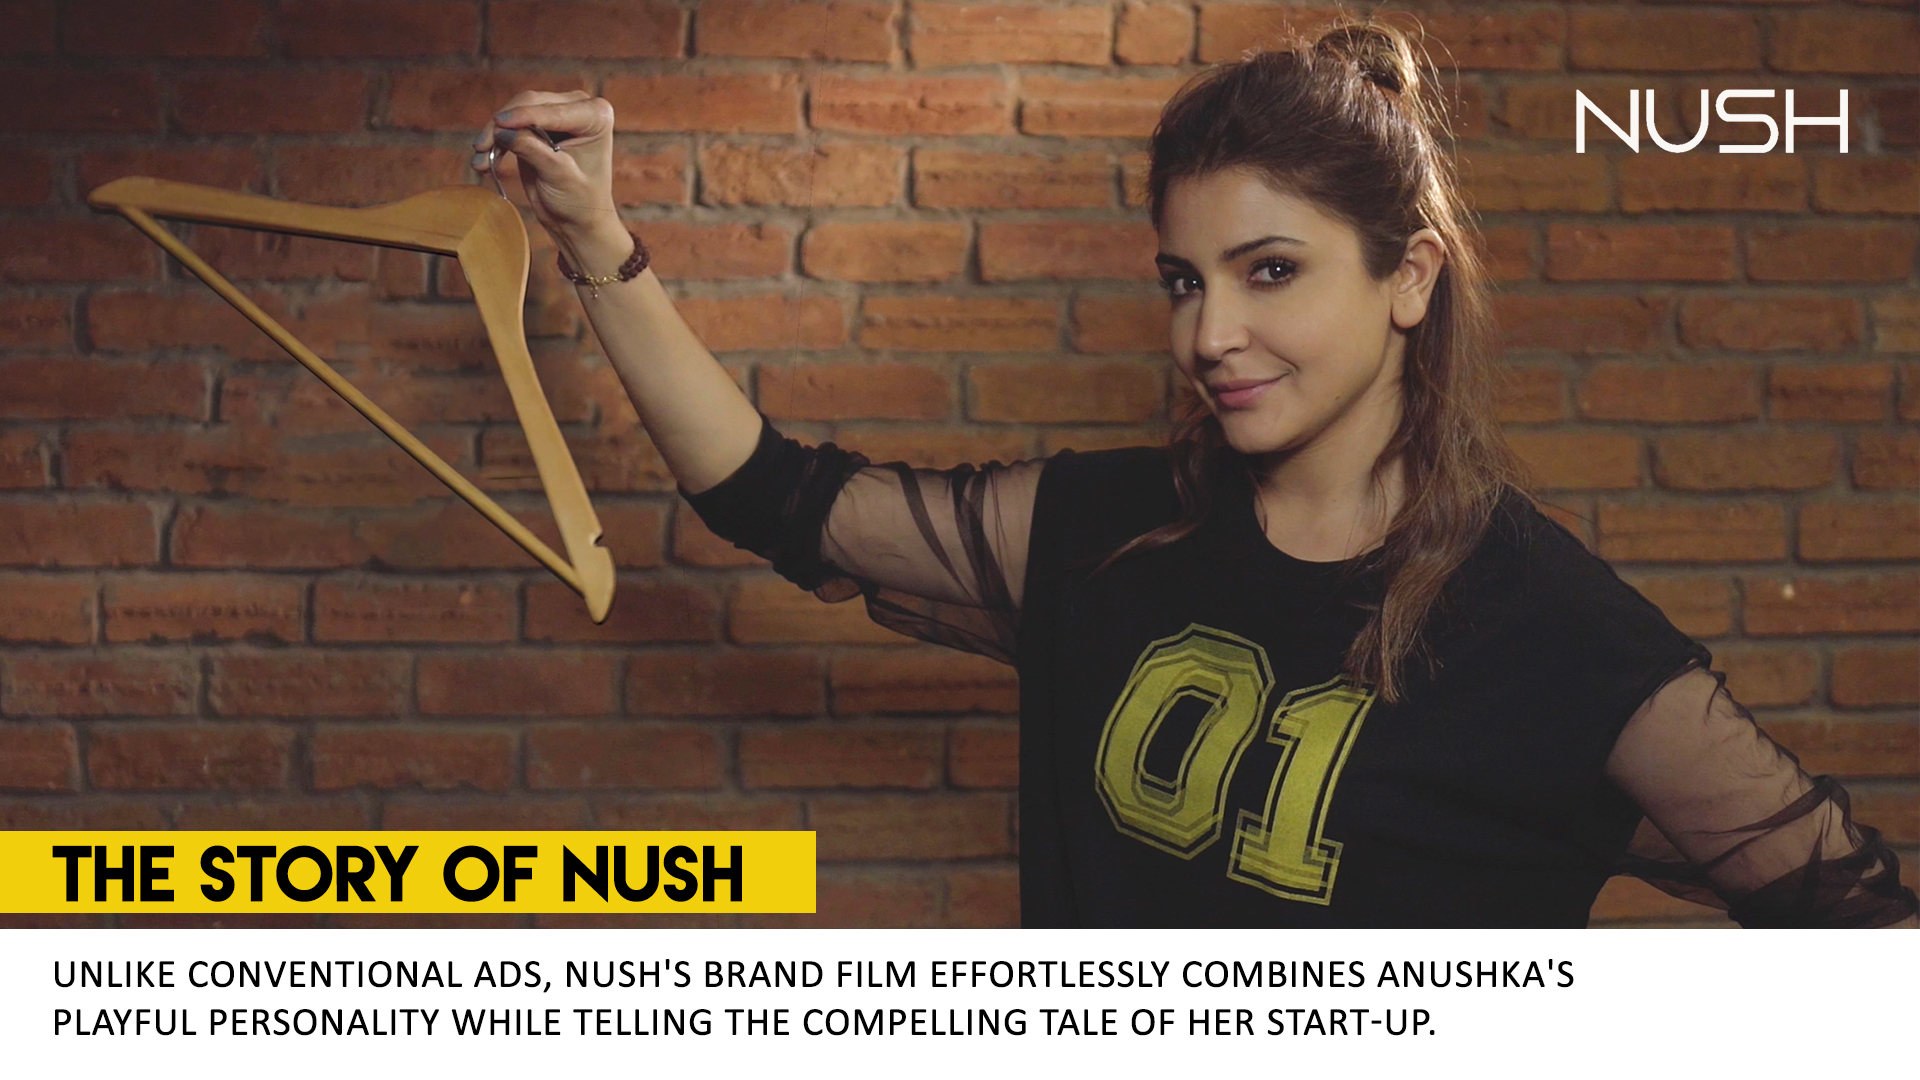 The Story of Nush - A brand film by